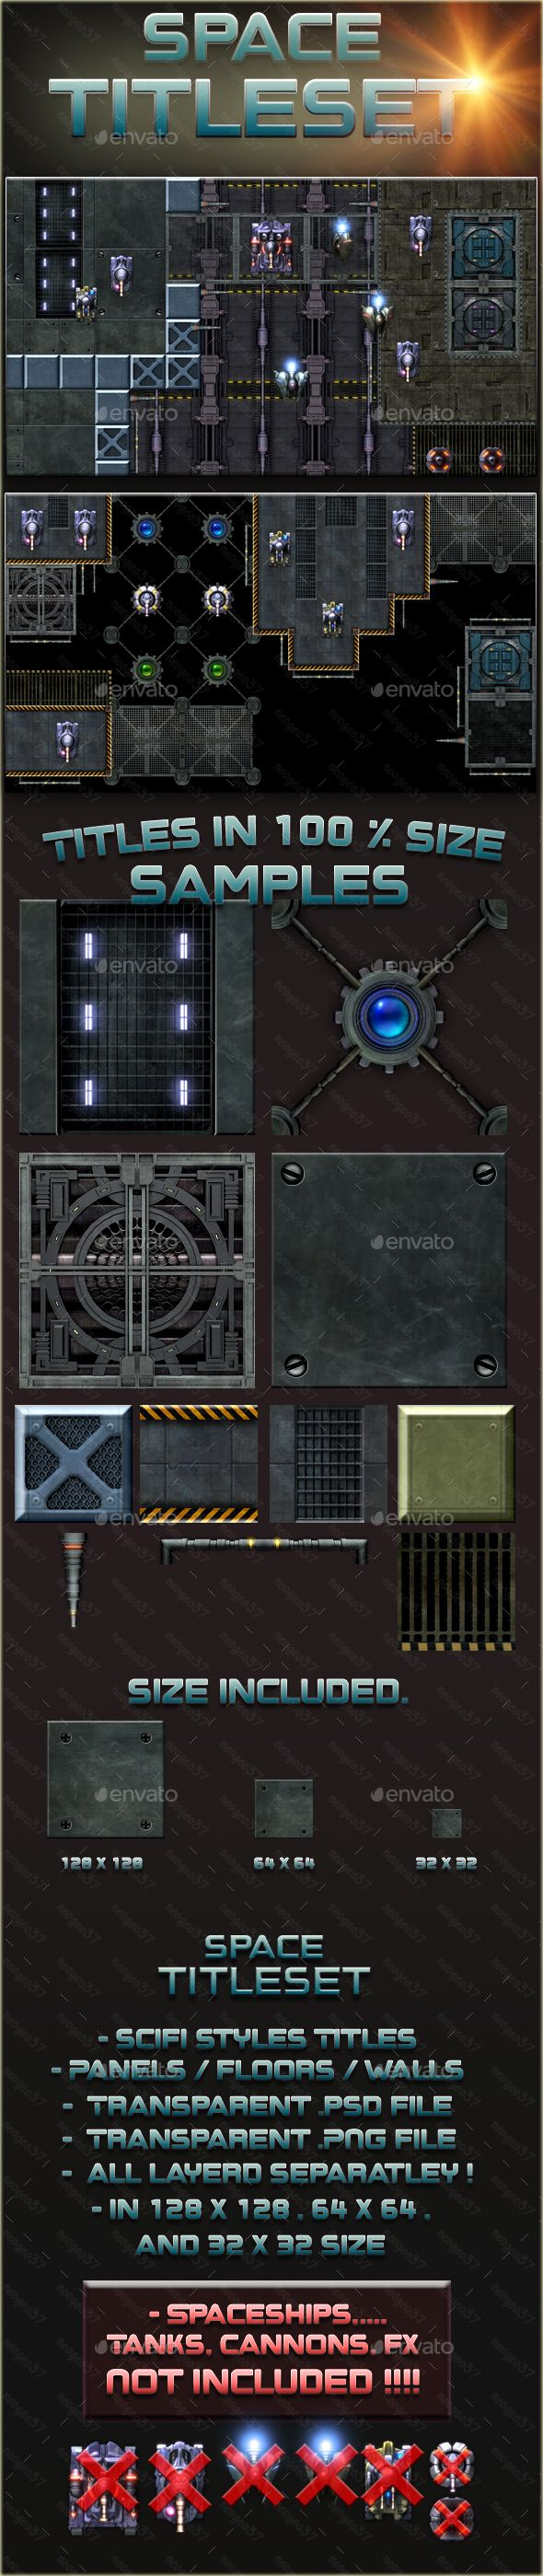 Scifi Space Titleset Tilesets Game Assets Download here